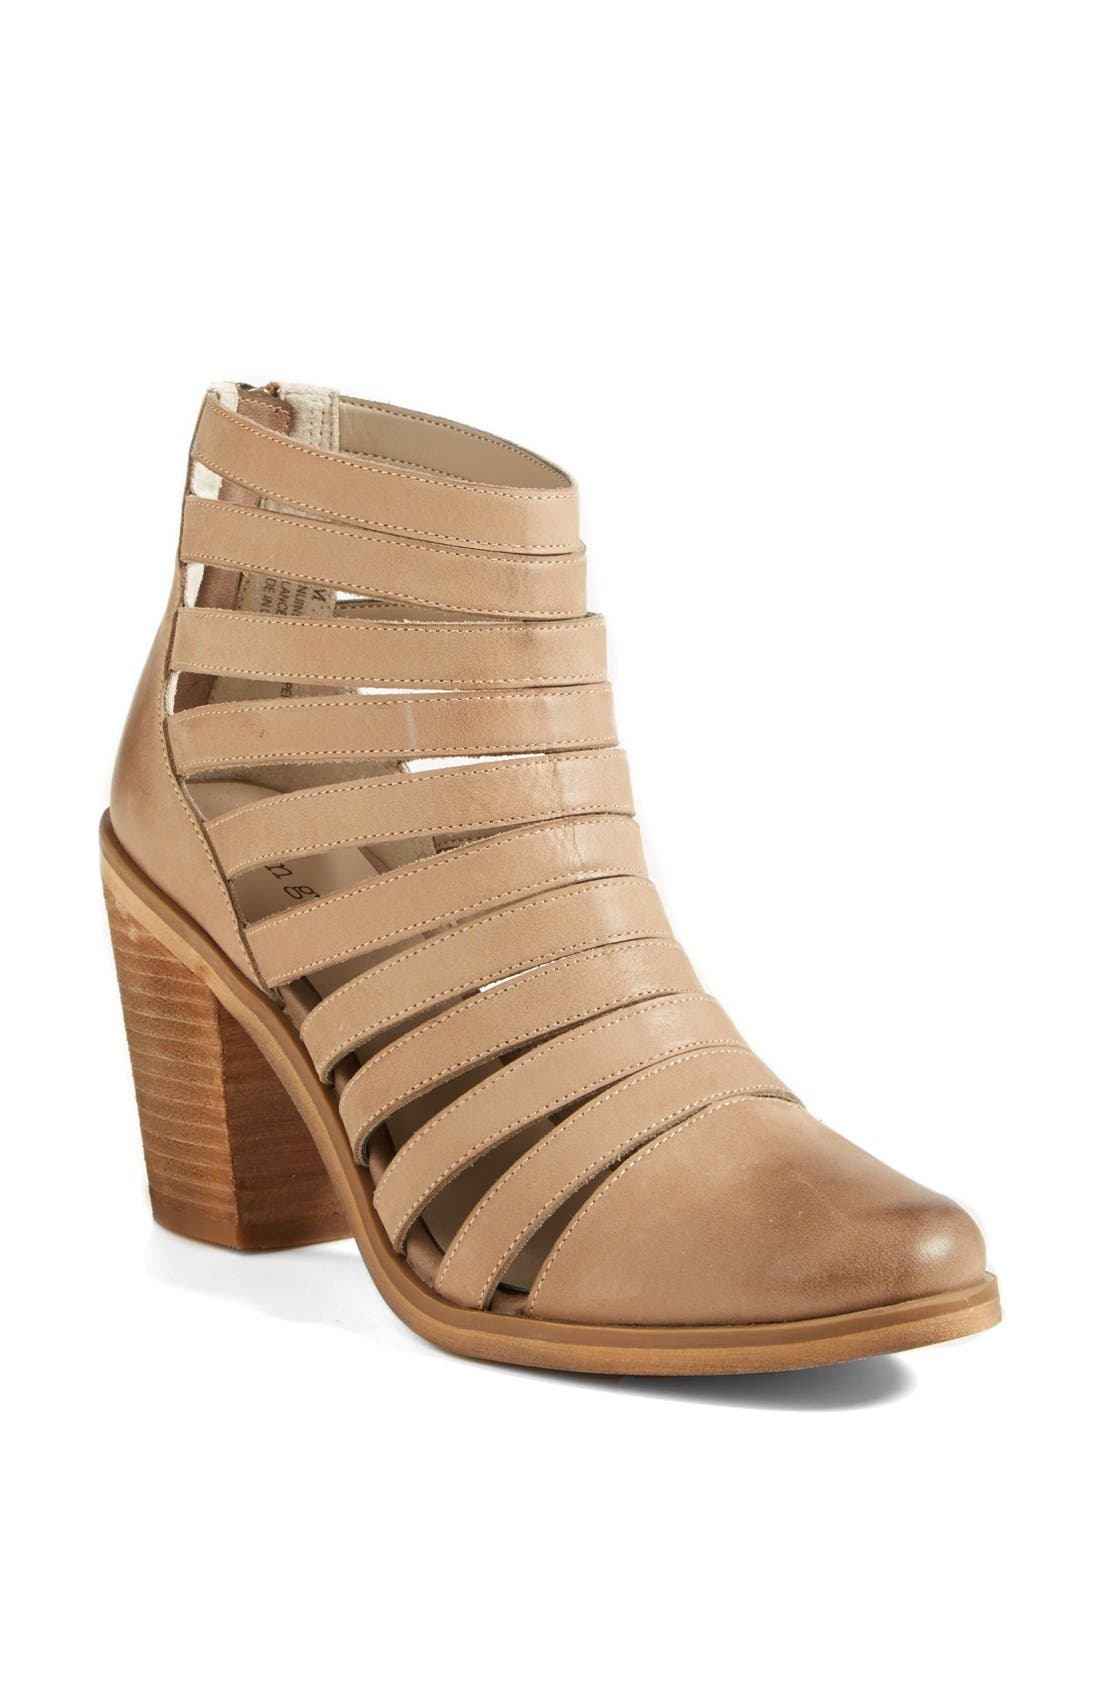 Main Image - Hinge 'Dresden' Caged Leather Bootie (Women)